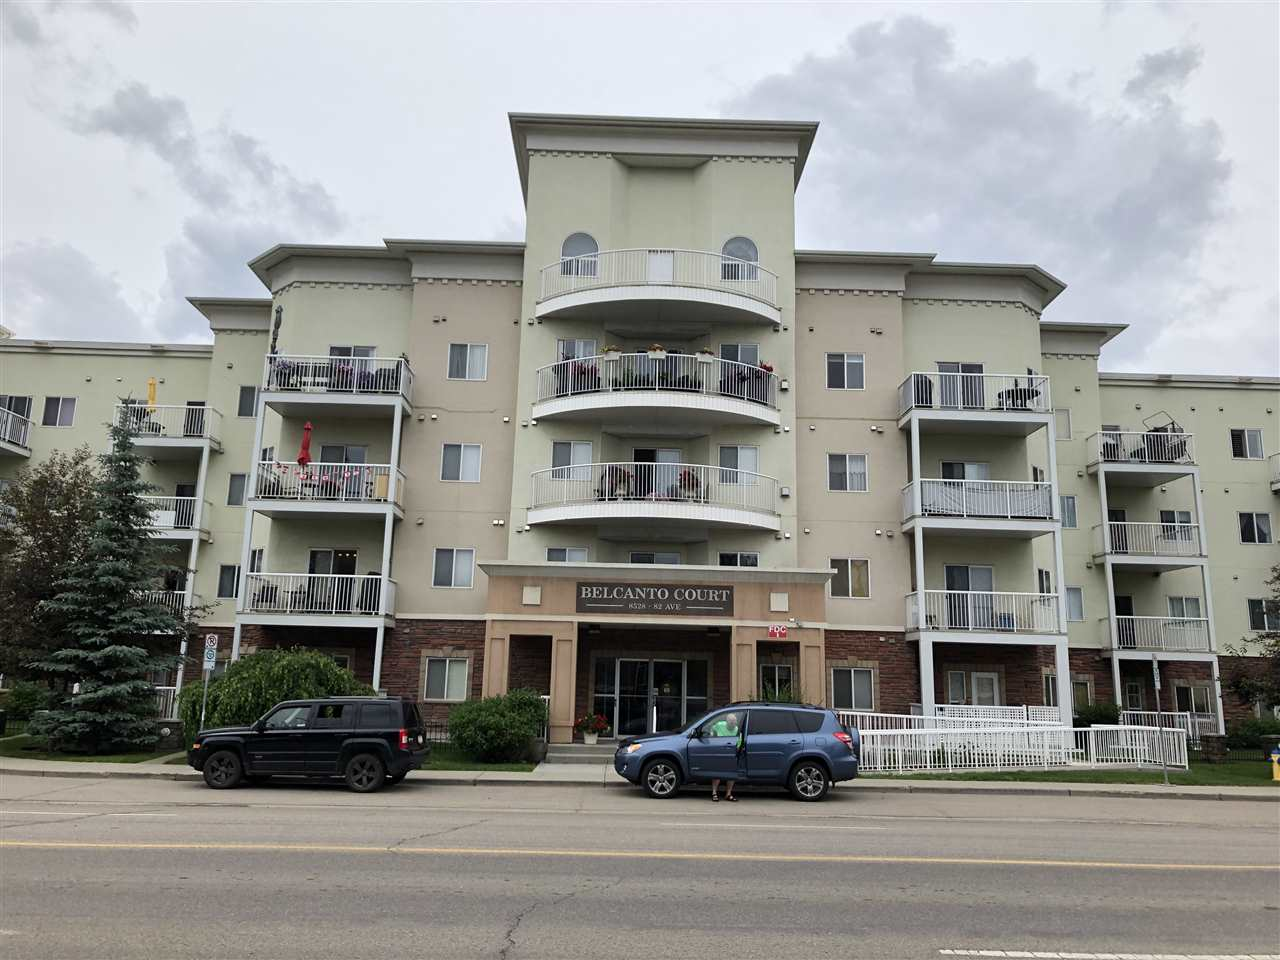 Super cozy 2 bedroom + 2 Bath California style condo perfect for sharing with Baths for each bedroom! Master Bdrm is spacious & features a walk through closet with 3 pce ensuite. Galley style kitchen features oak wood cabinets and white appliances. Cozy living room features gas corner fireplace and Garden Doors to balcony! Unit has insuite laundry with newer stacked washer and dryer. Suite includes an underground parking stall! Complex features Car Wash,& Guest Suite.This Adult 45+ bldg is beautifully maintained and steps from Bonnie Doon Mall and on direct bus line to U of A, Downtown and Whyte Ave! Priced Perfect!!